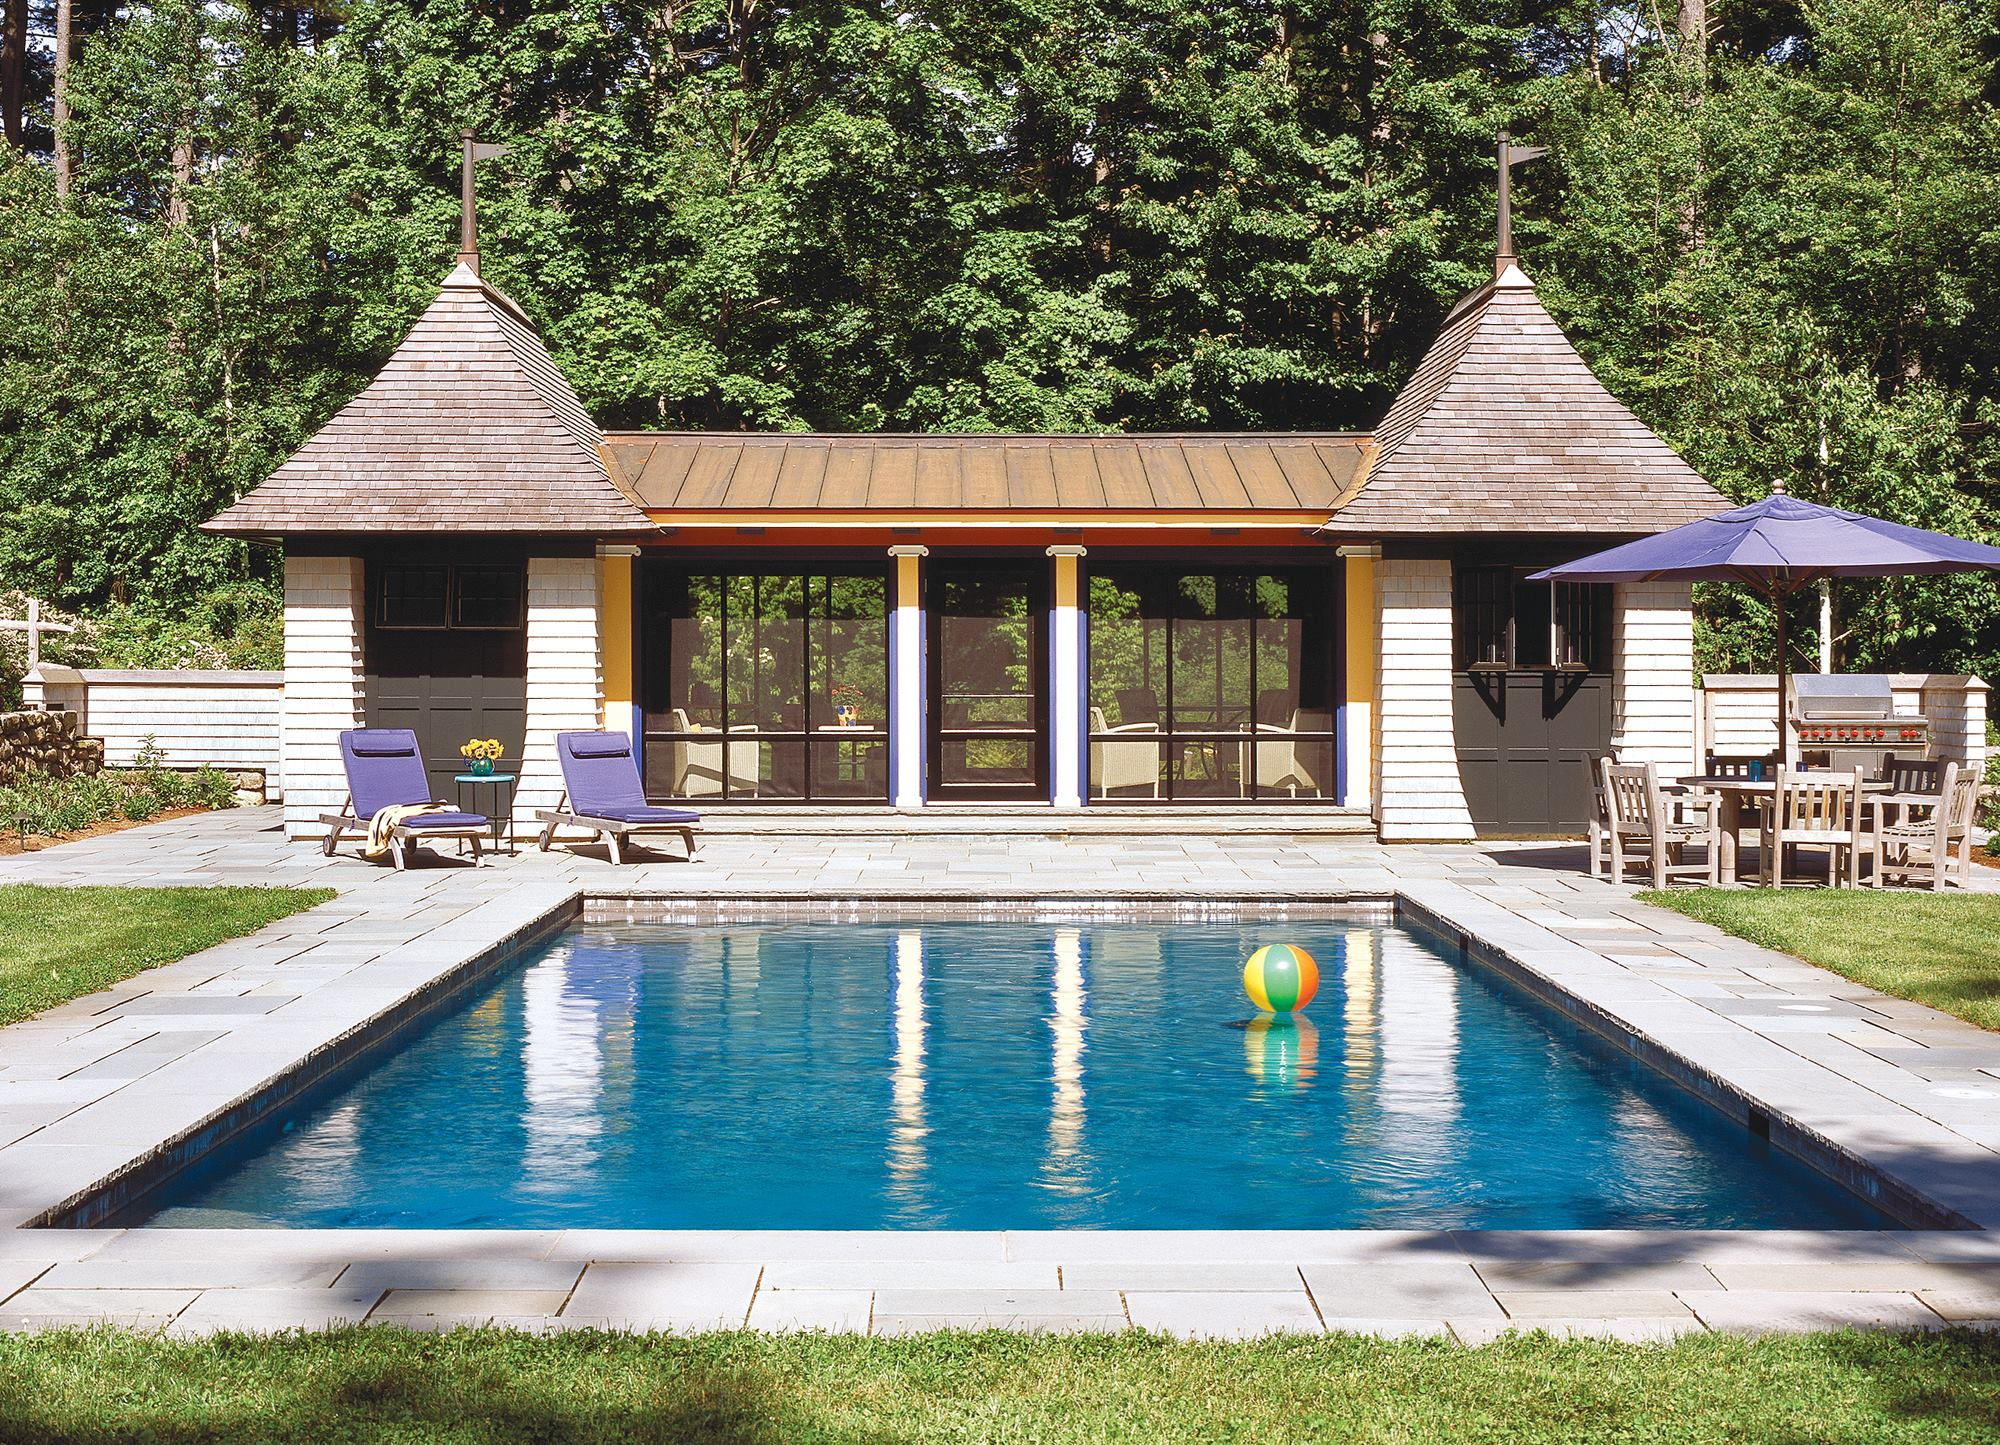 Pool houses custom home magazine design vacation for Pool design drawings